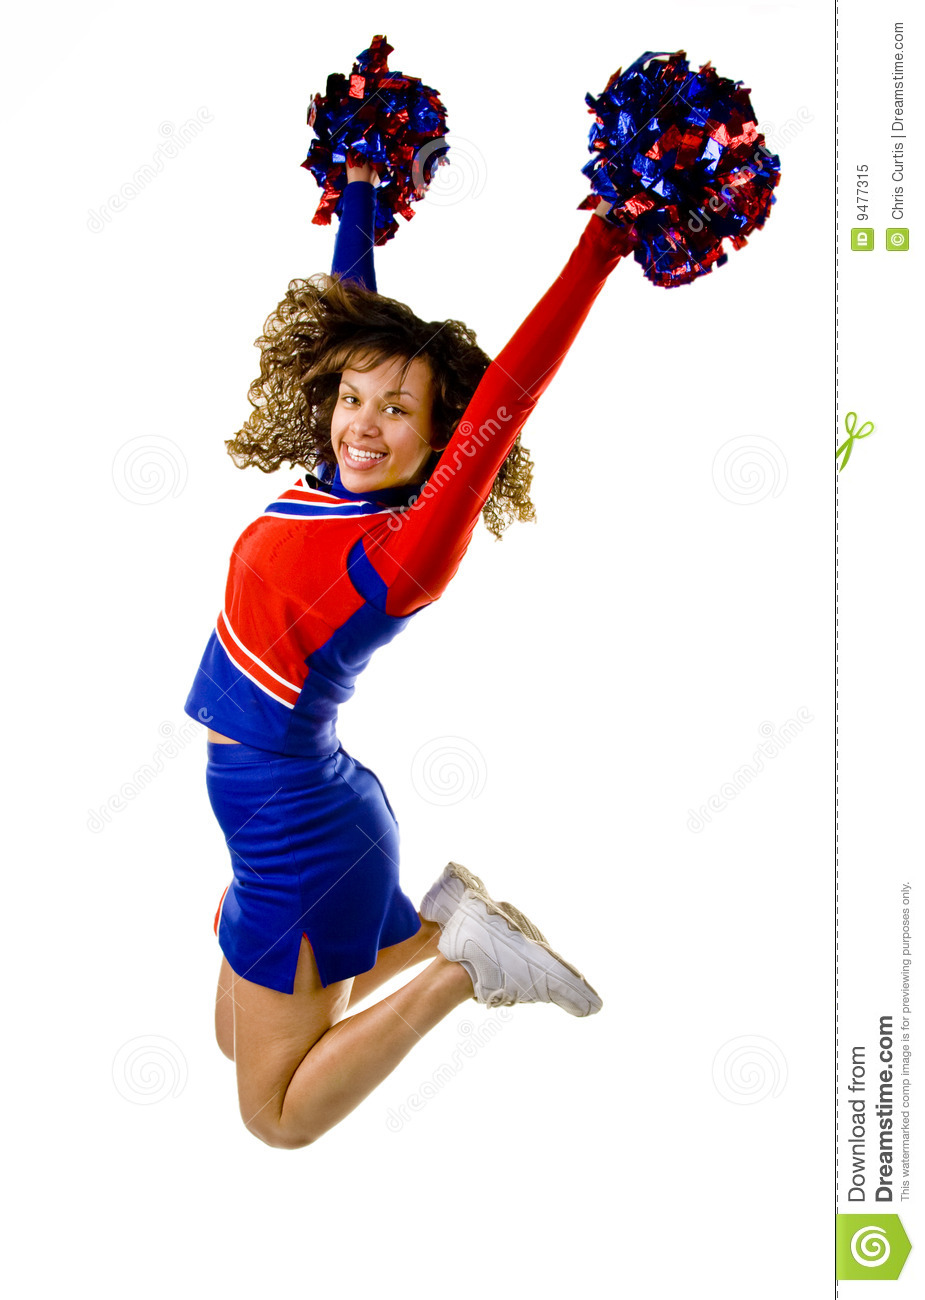 cheerleader jumping stock image image of cheer  motion cheerleader clipart free cheerleader clip art images free